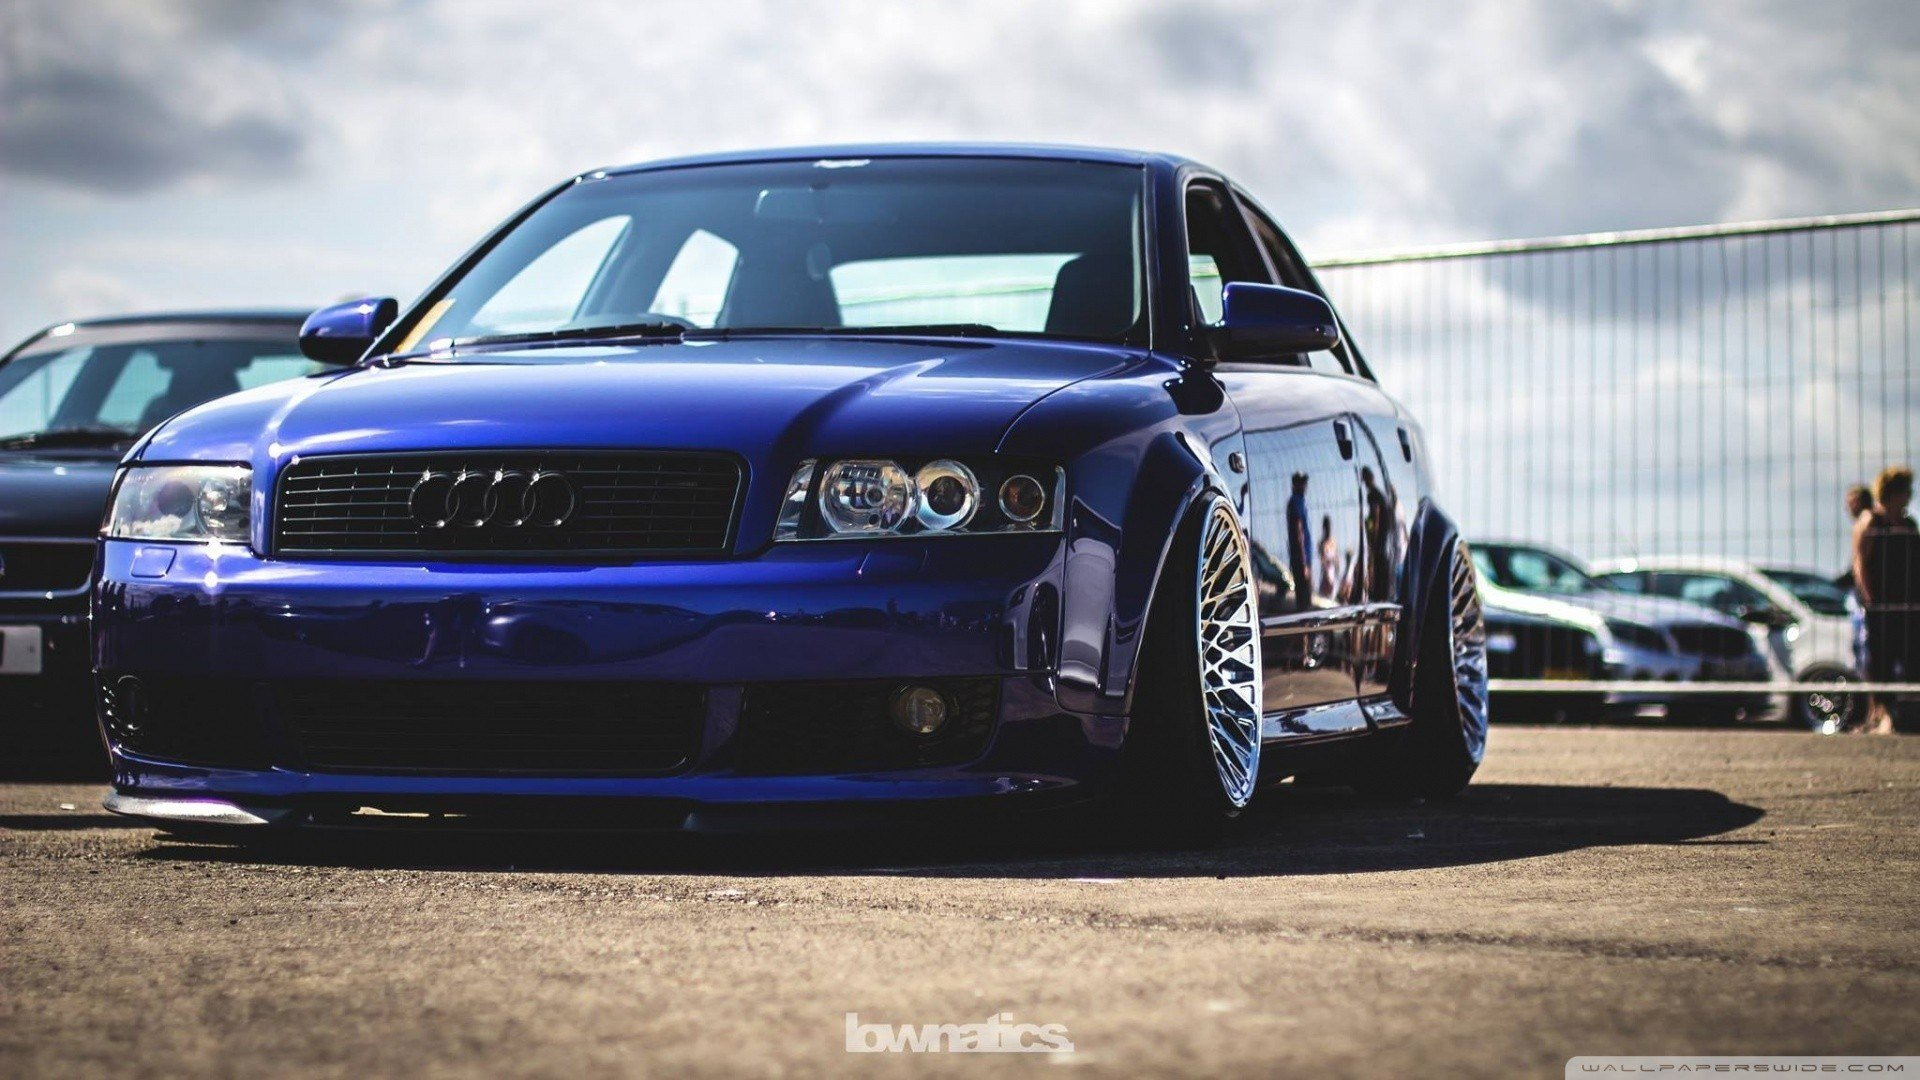 Latest Audi A4 Audi S4 Audi Stance Car Vehicle Blue Cars Free Download